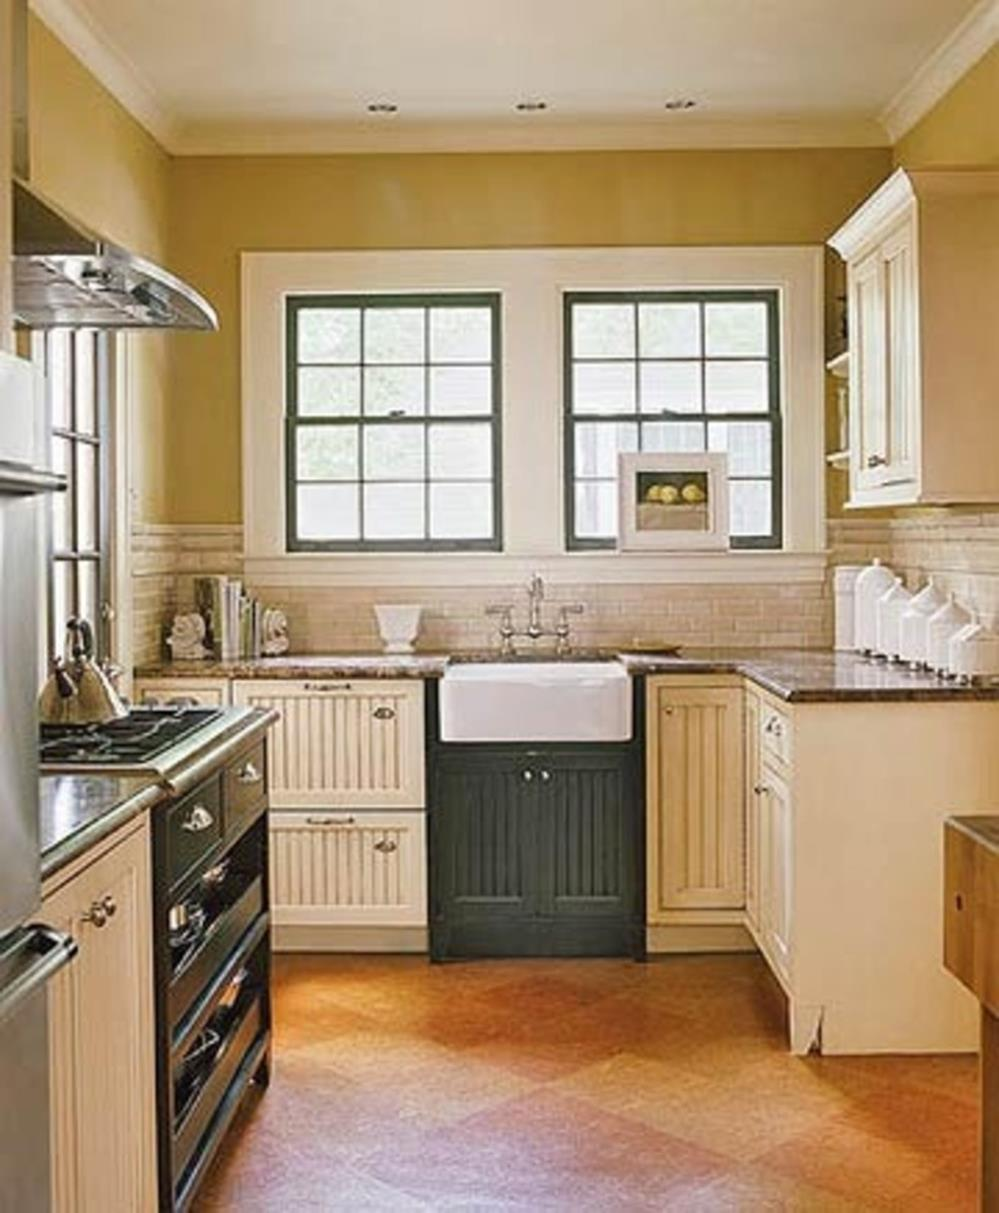 Small Country Kitchens Design and Decor Ideas 34